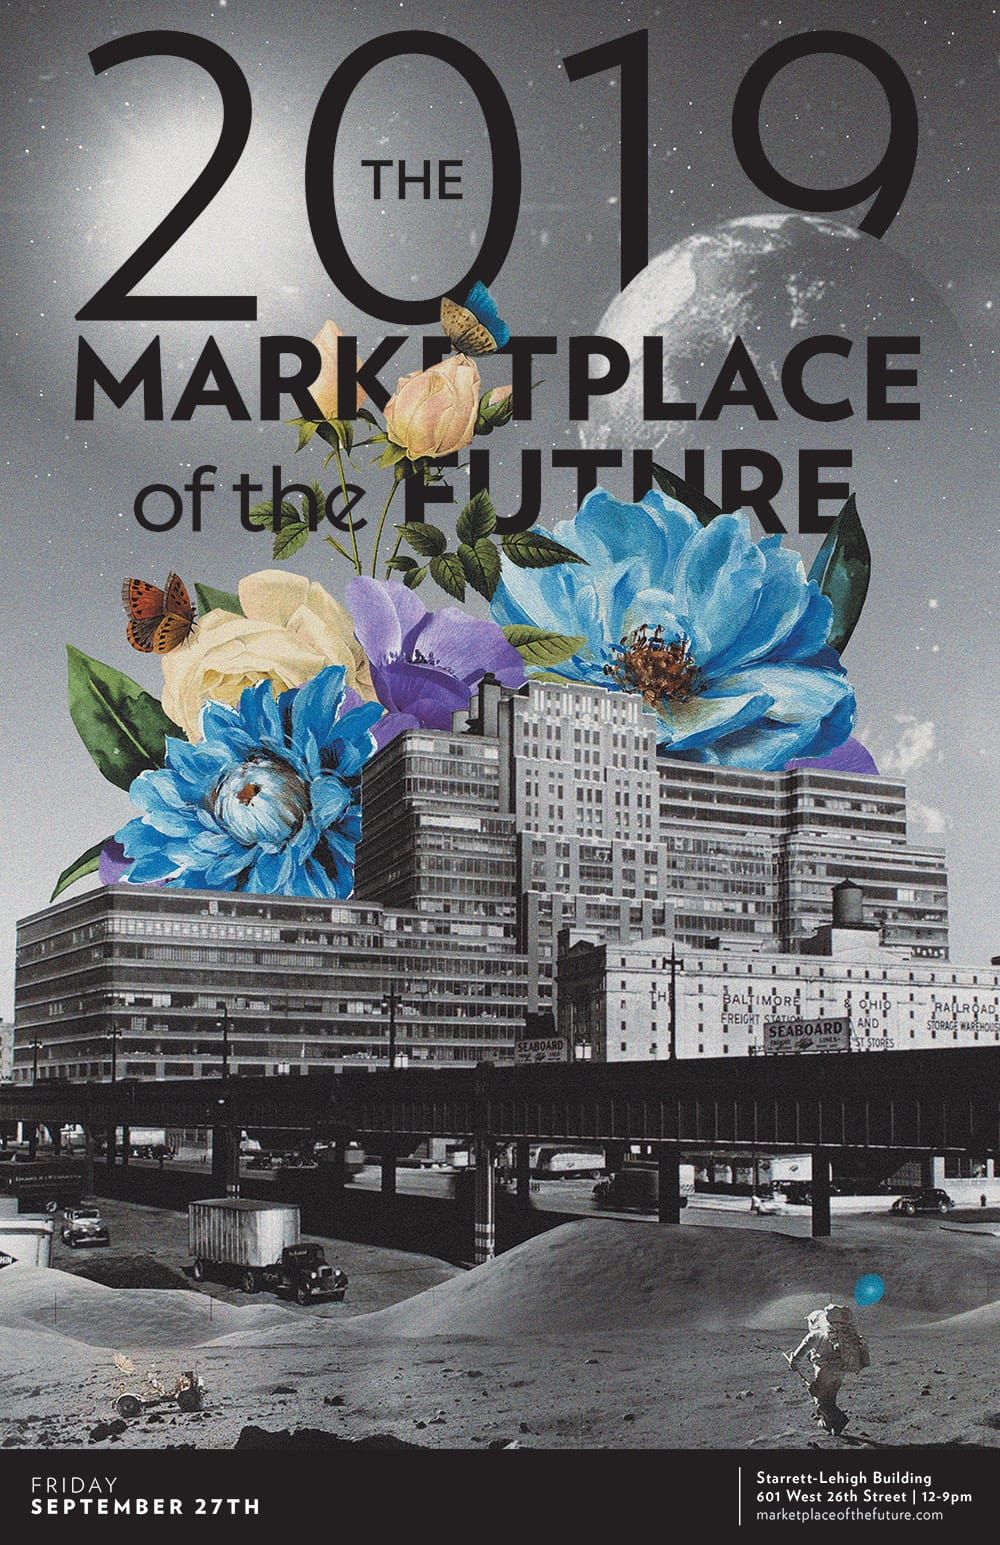 Marketplace of the Future Posters